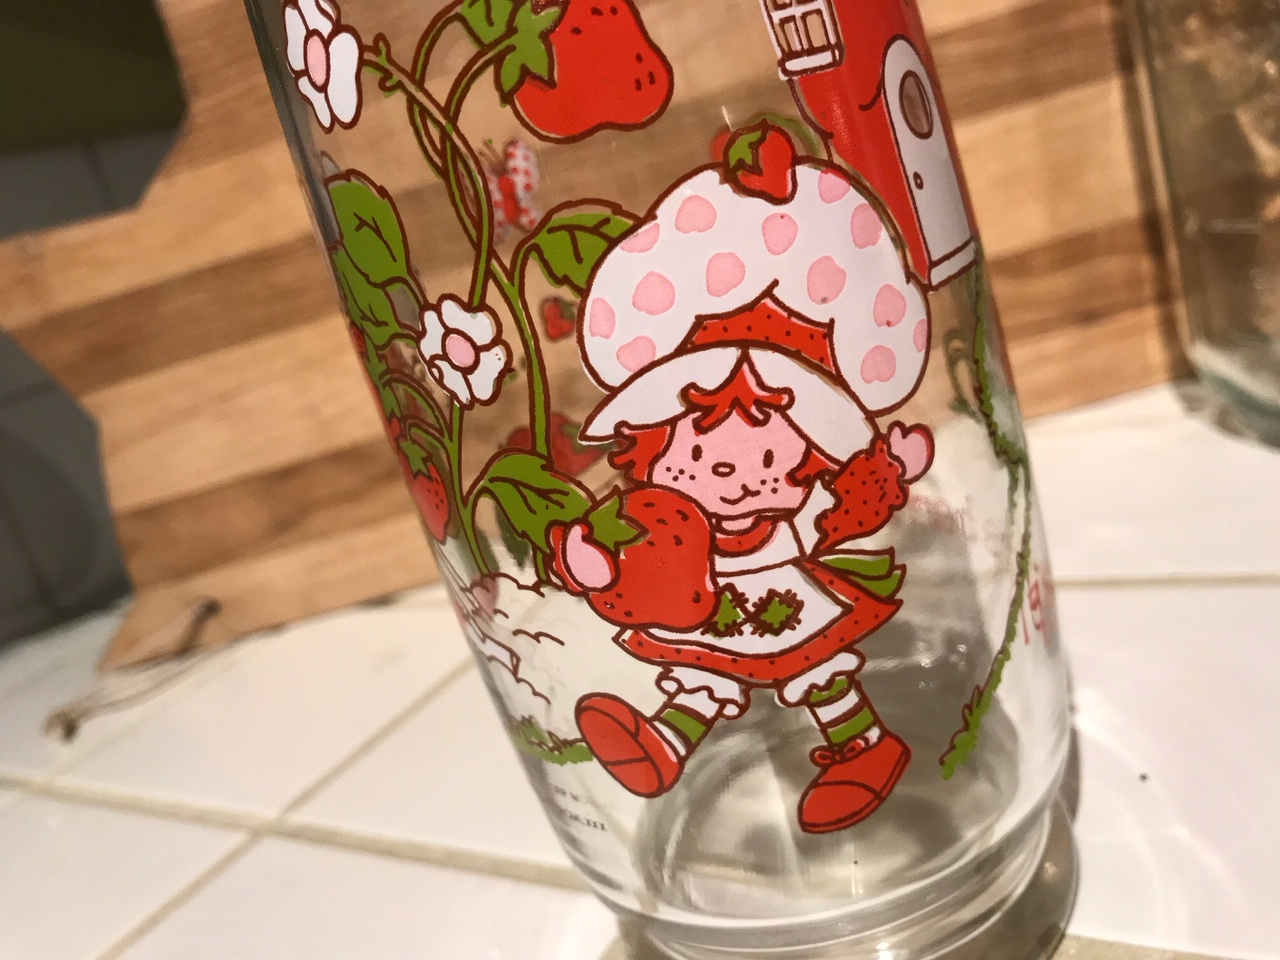 Vintage 1980 Strawberry Shortcake Glass 65 800 Ppm Lead 2 622 Ppm Cadmium 77 Ppm Mercury 90 Ppm Lead Is Unsafe For Kids Lead Safe Mama